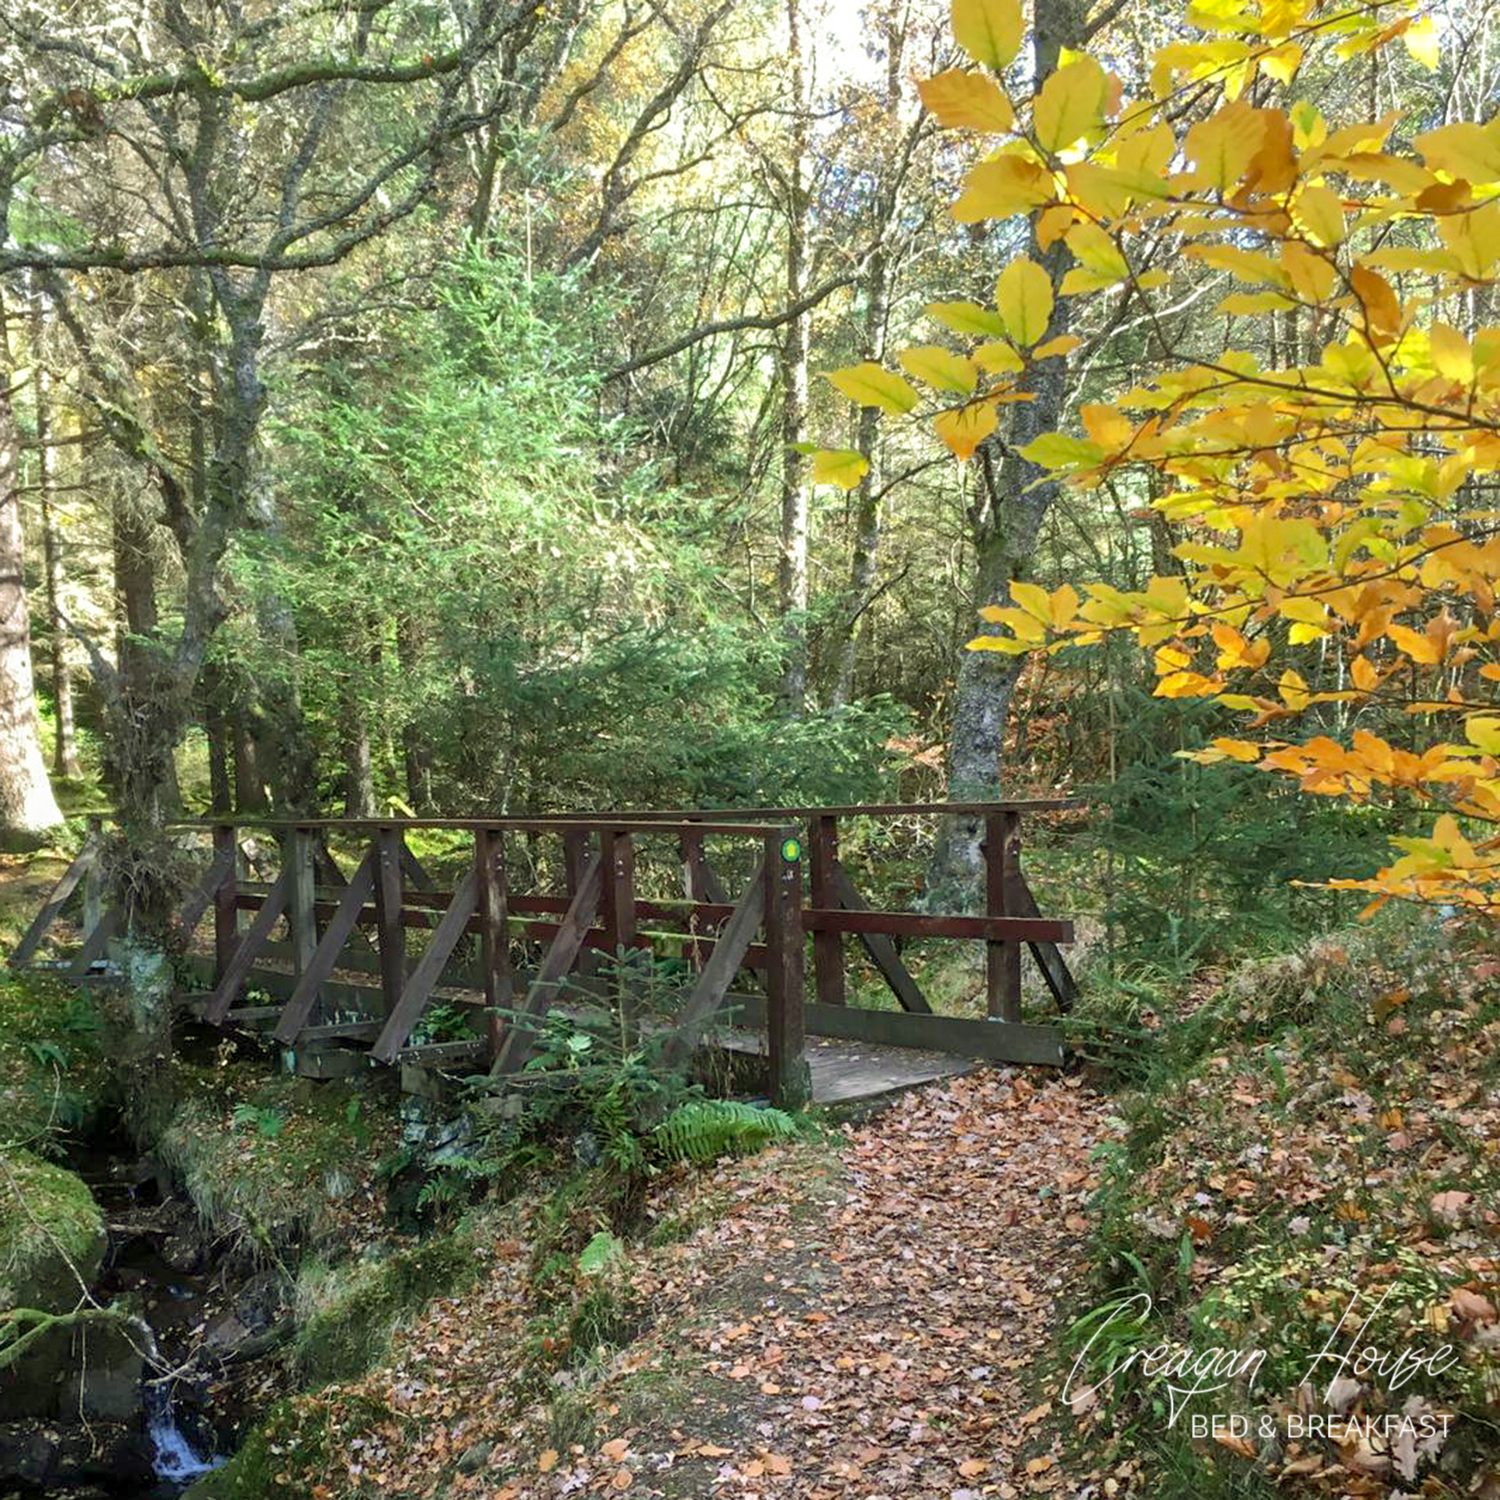 Autumn leaves in Strathyre Forest